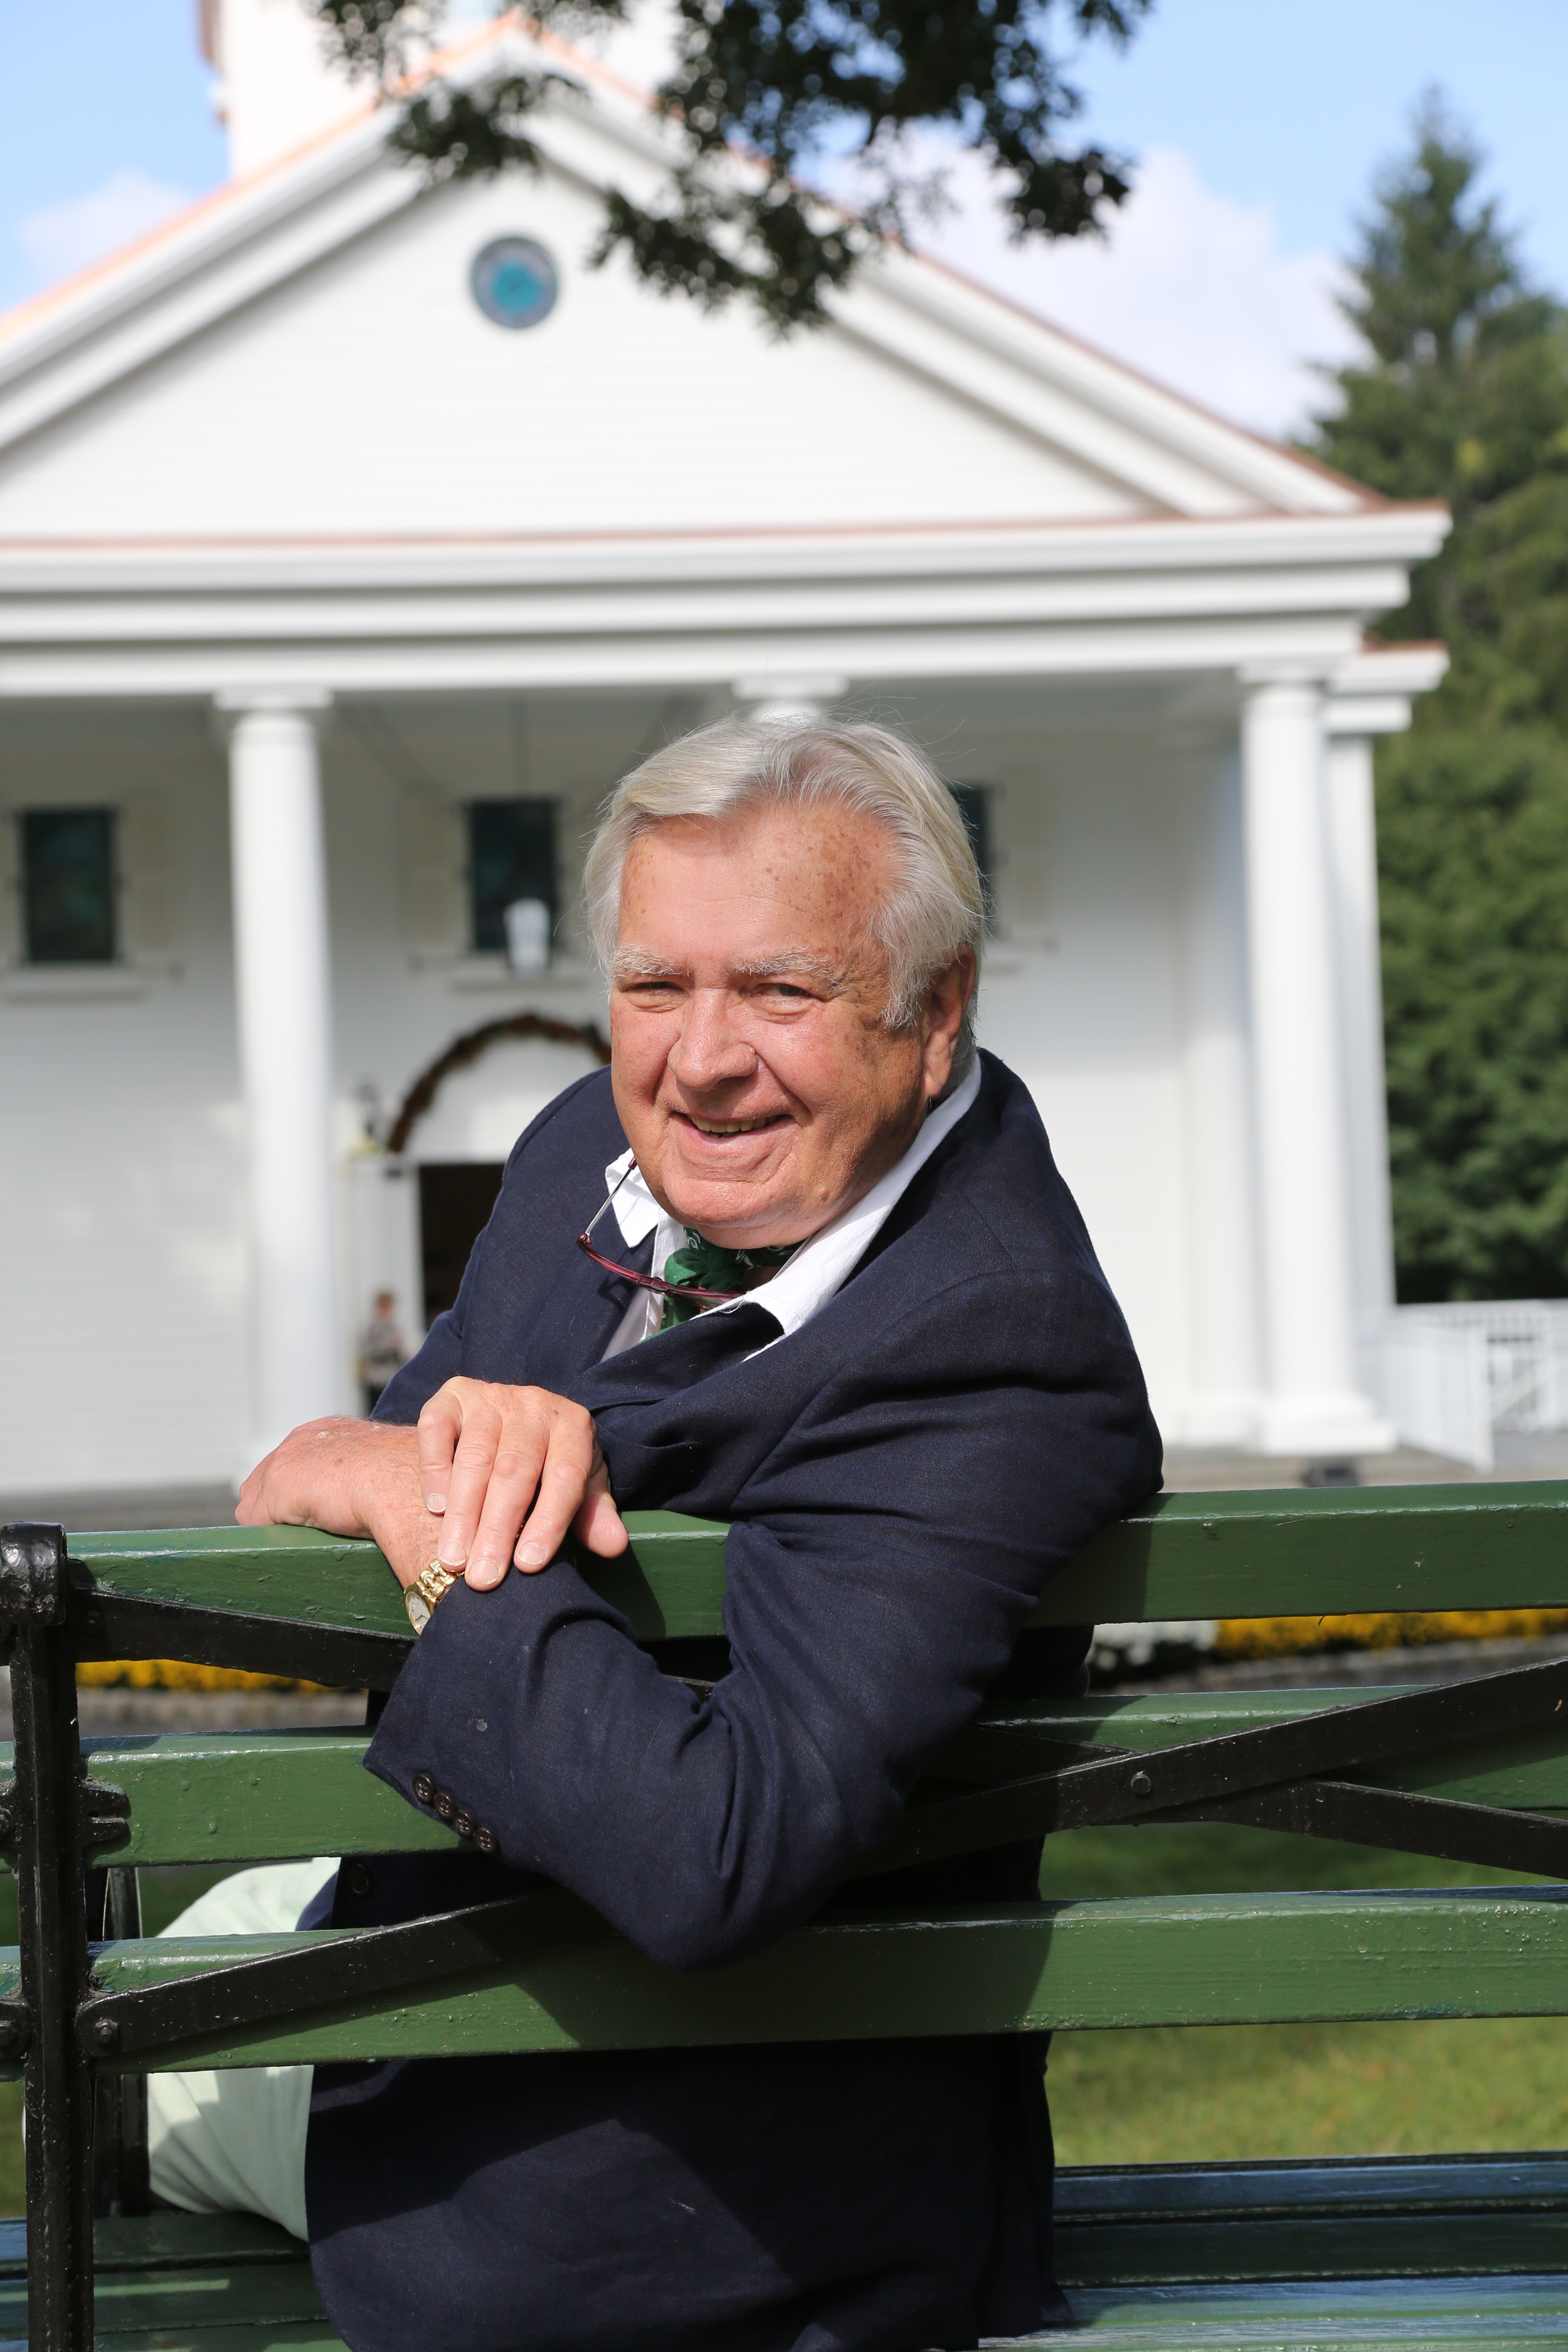 Carleton Varney in front of The Greenbrier Chapel. Photo by Mike Wyatt of Greenbrier Photo.